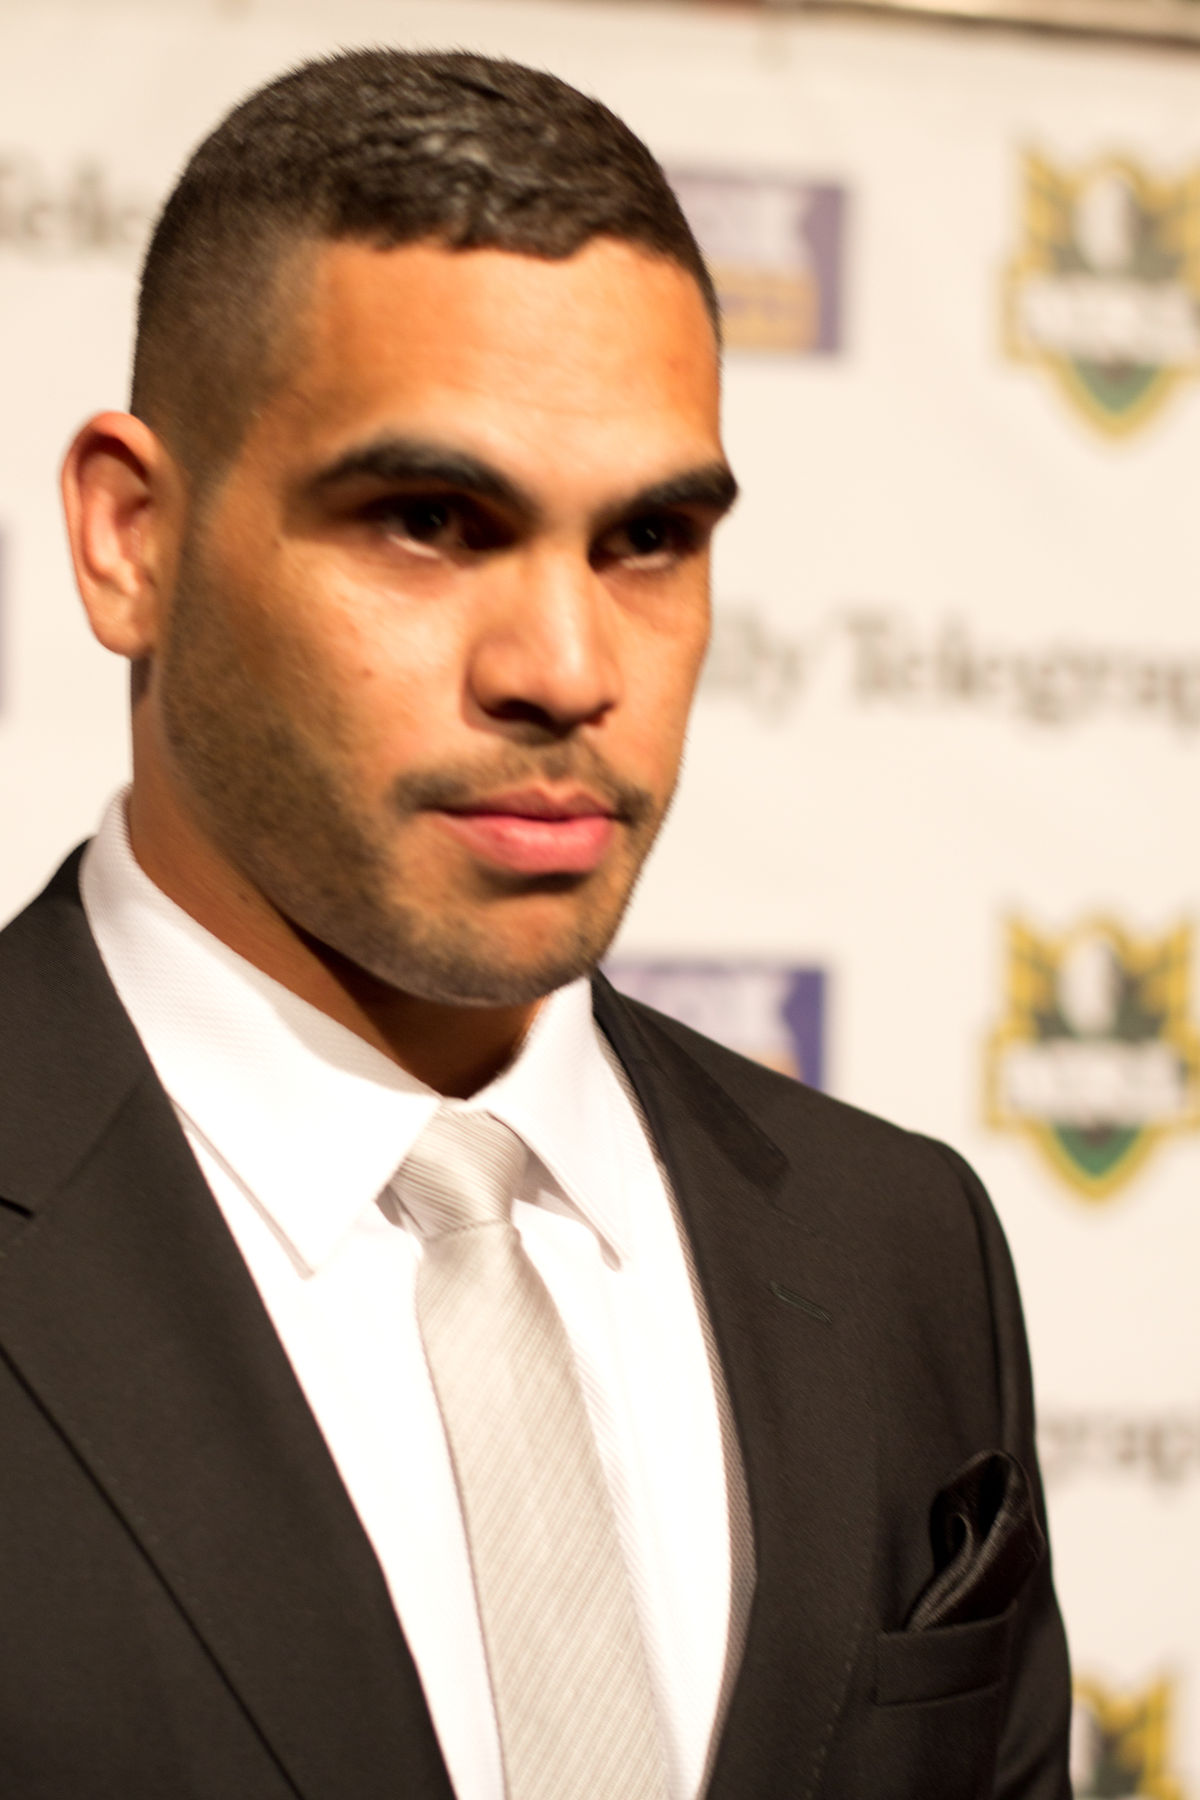 rabbitohs - photo #39